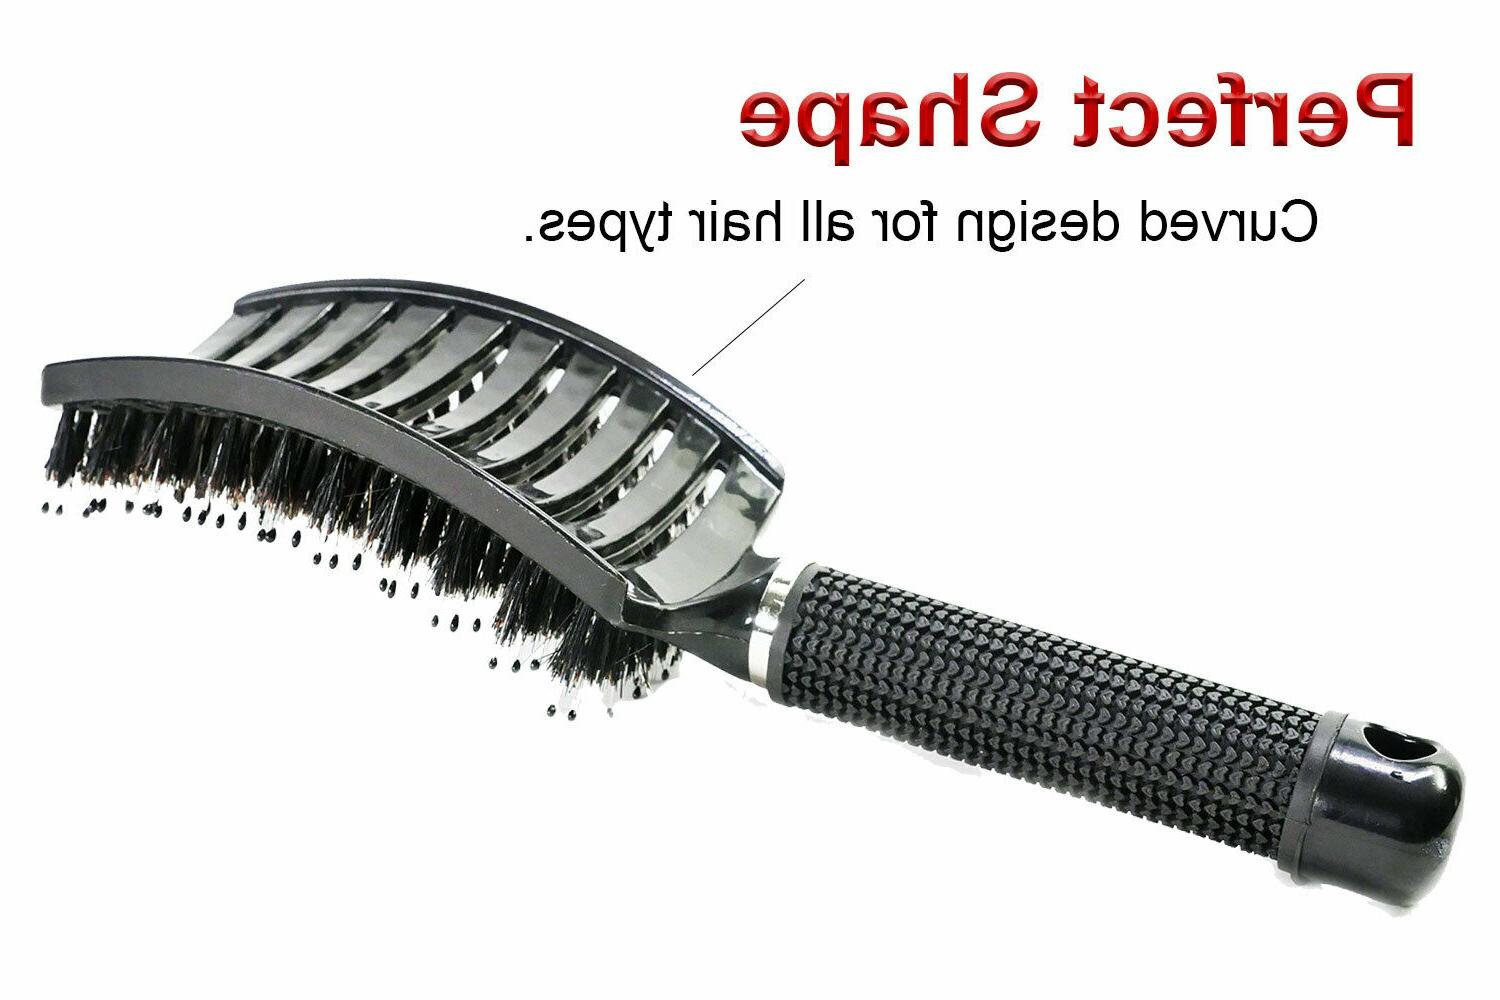 Curved Vented Boar Bristle Styling Brush, Any Type or Women